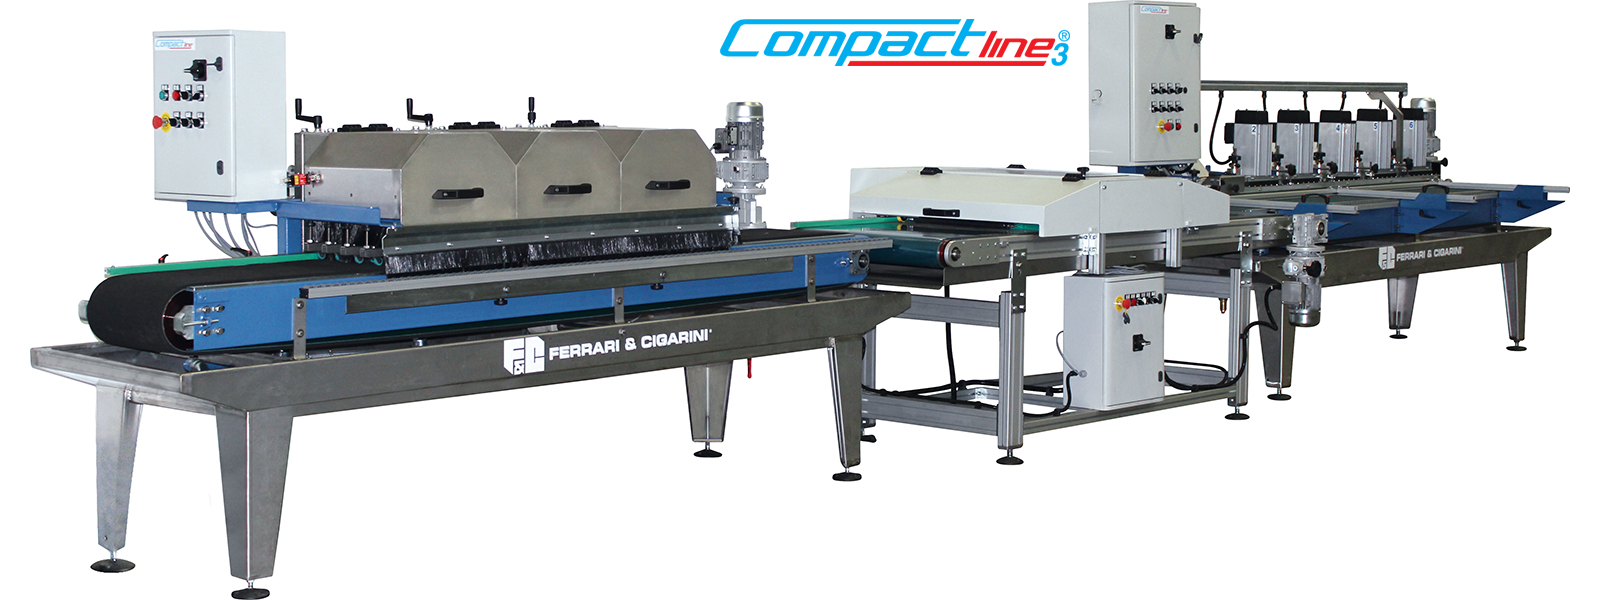 COMPACT LINE 3 - AUTOMATIC CUTTING AND  EDGE-PROFILING LINE FOR CERAMIC, MARBLE, STONE AND BRICK